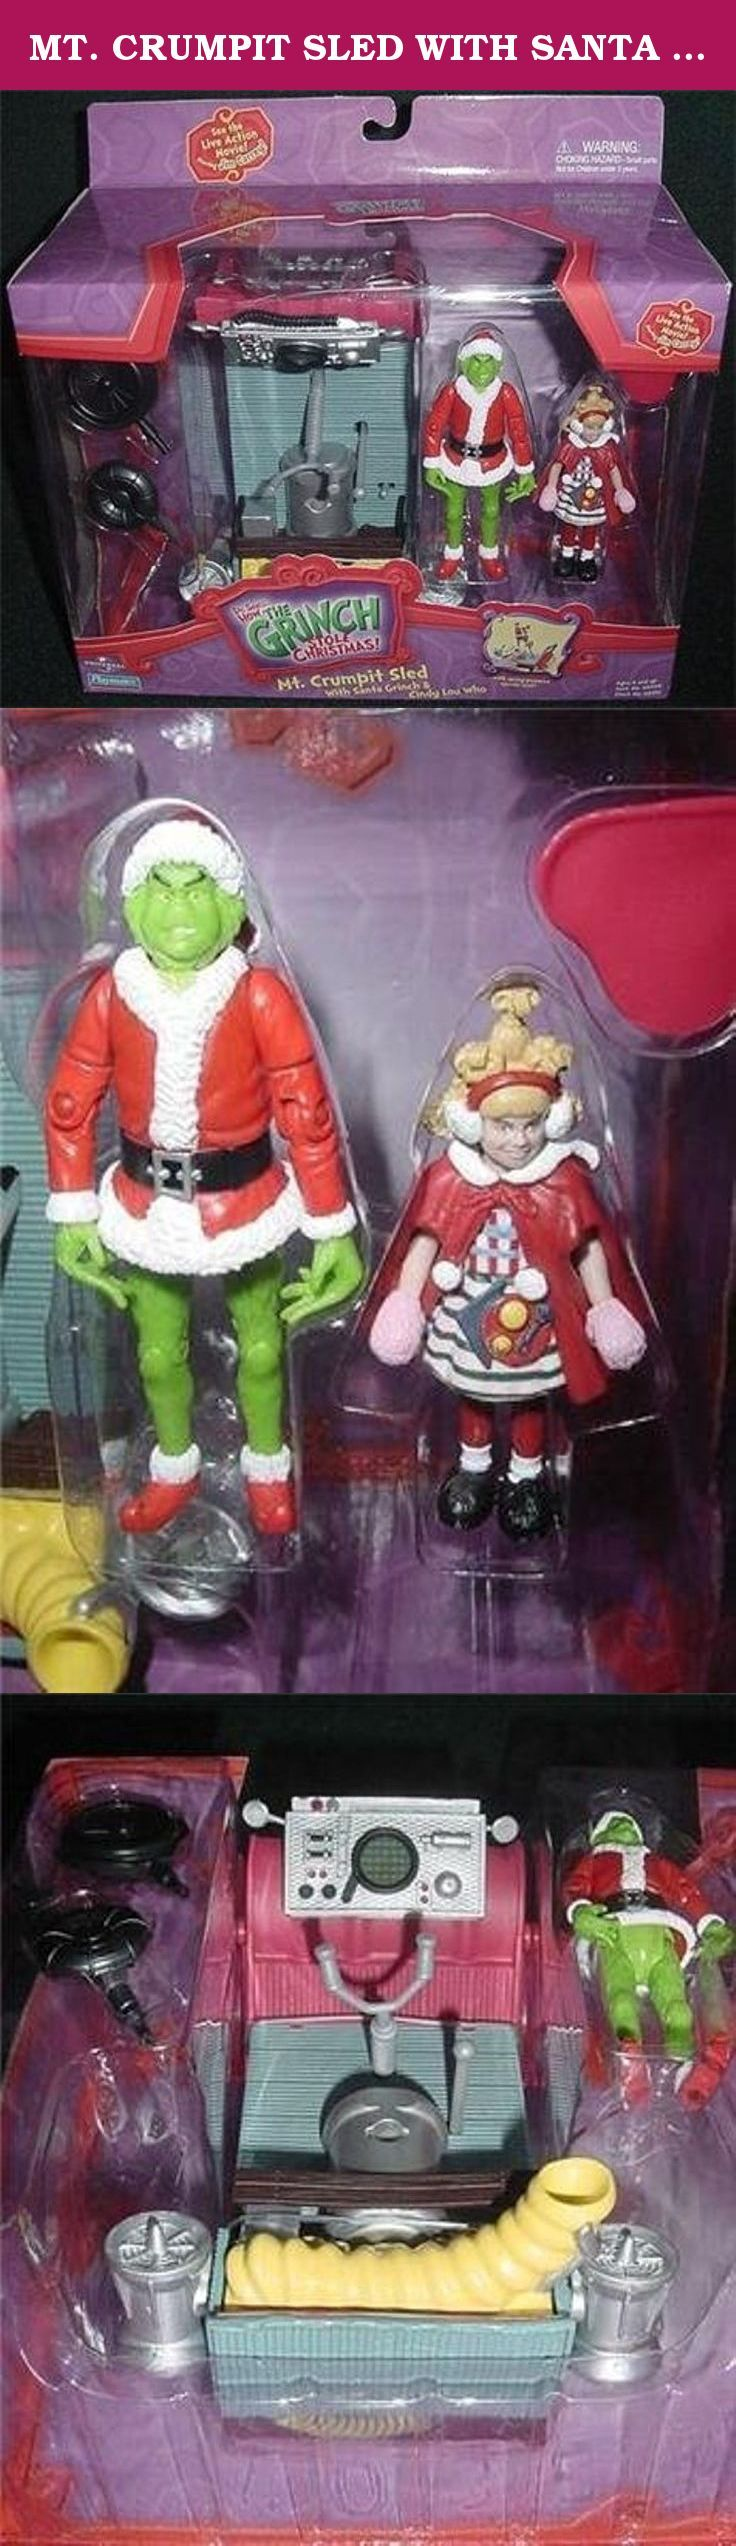 MT. CRUMPIT SLED WITH SANTA GRINCH & CINDY LOU WHO - DR. SEUSS' HOW THE GRINCH STOLE CHRISTMAS by Mcfarlane toys. Santa Grinch and Cindy Lou Who with Sled.